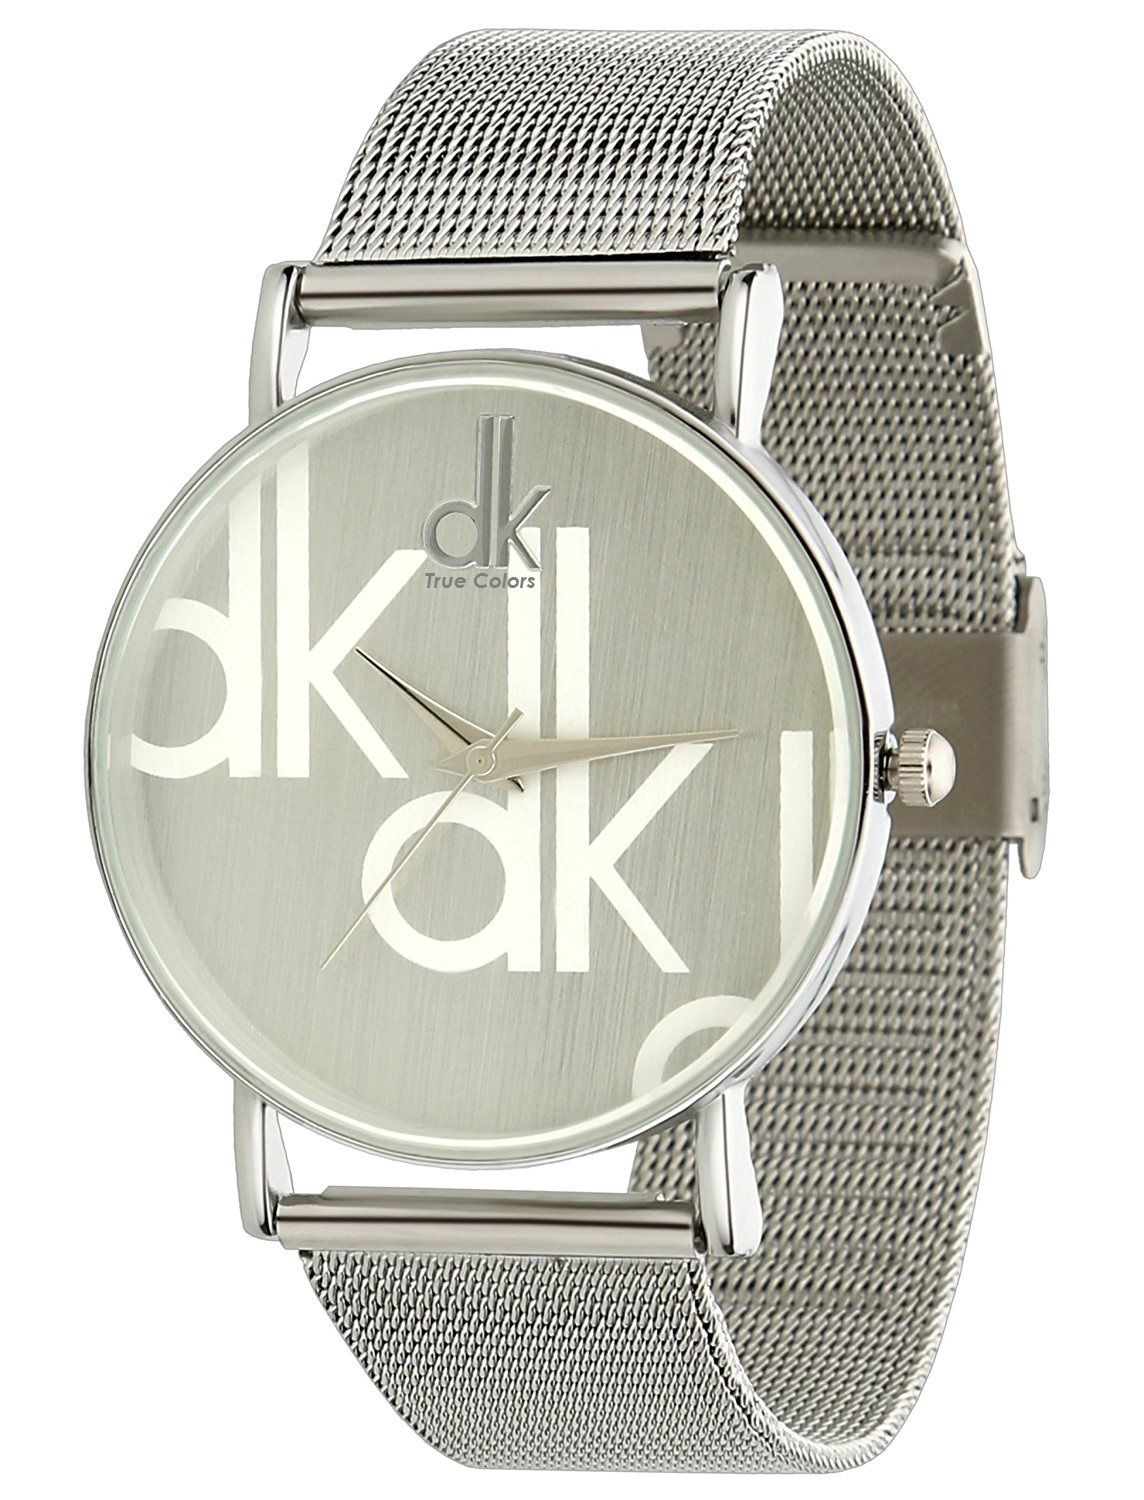 True Choice Beautiful Silver Colored Analog Watch For Girls